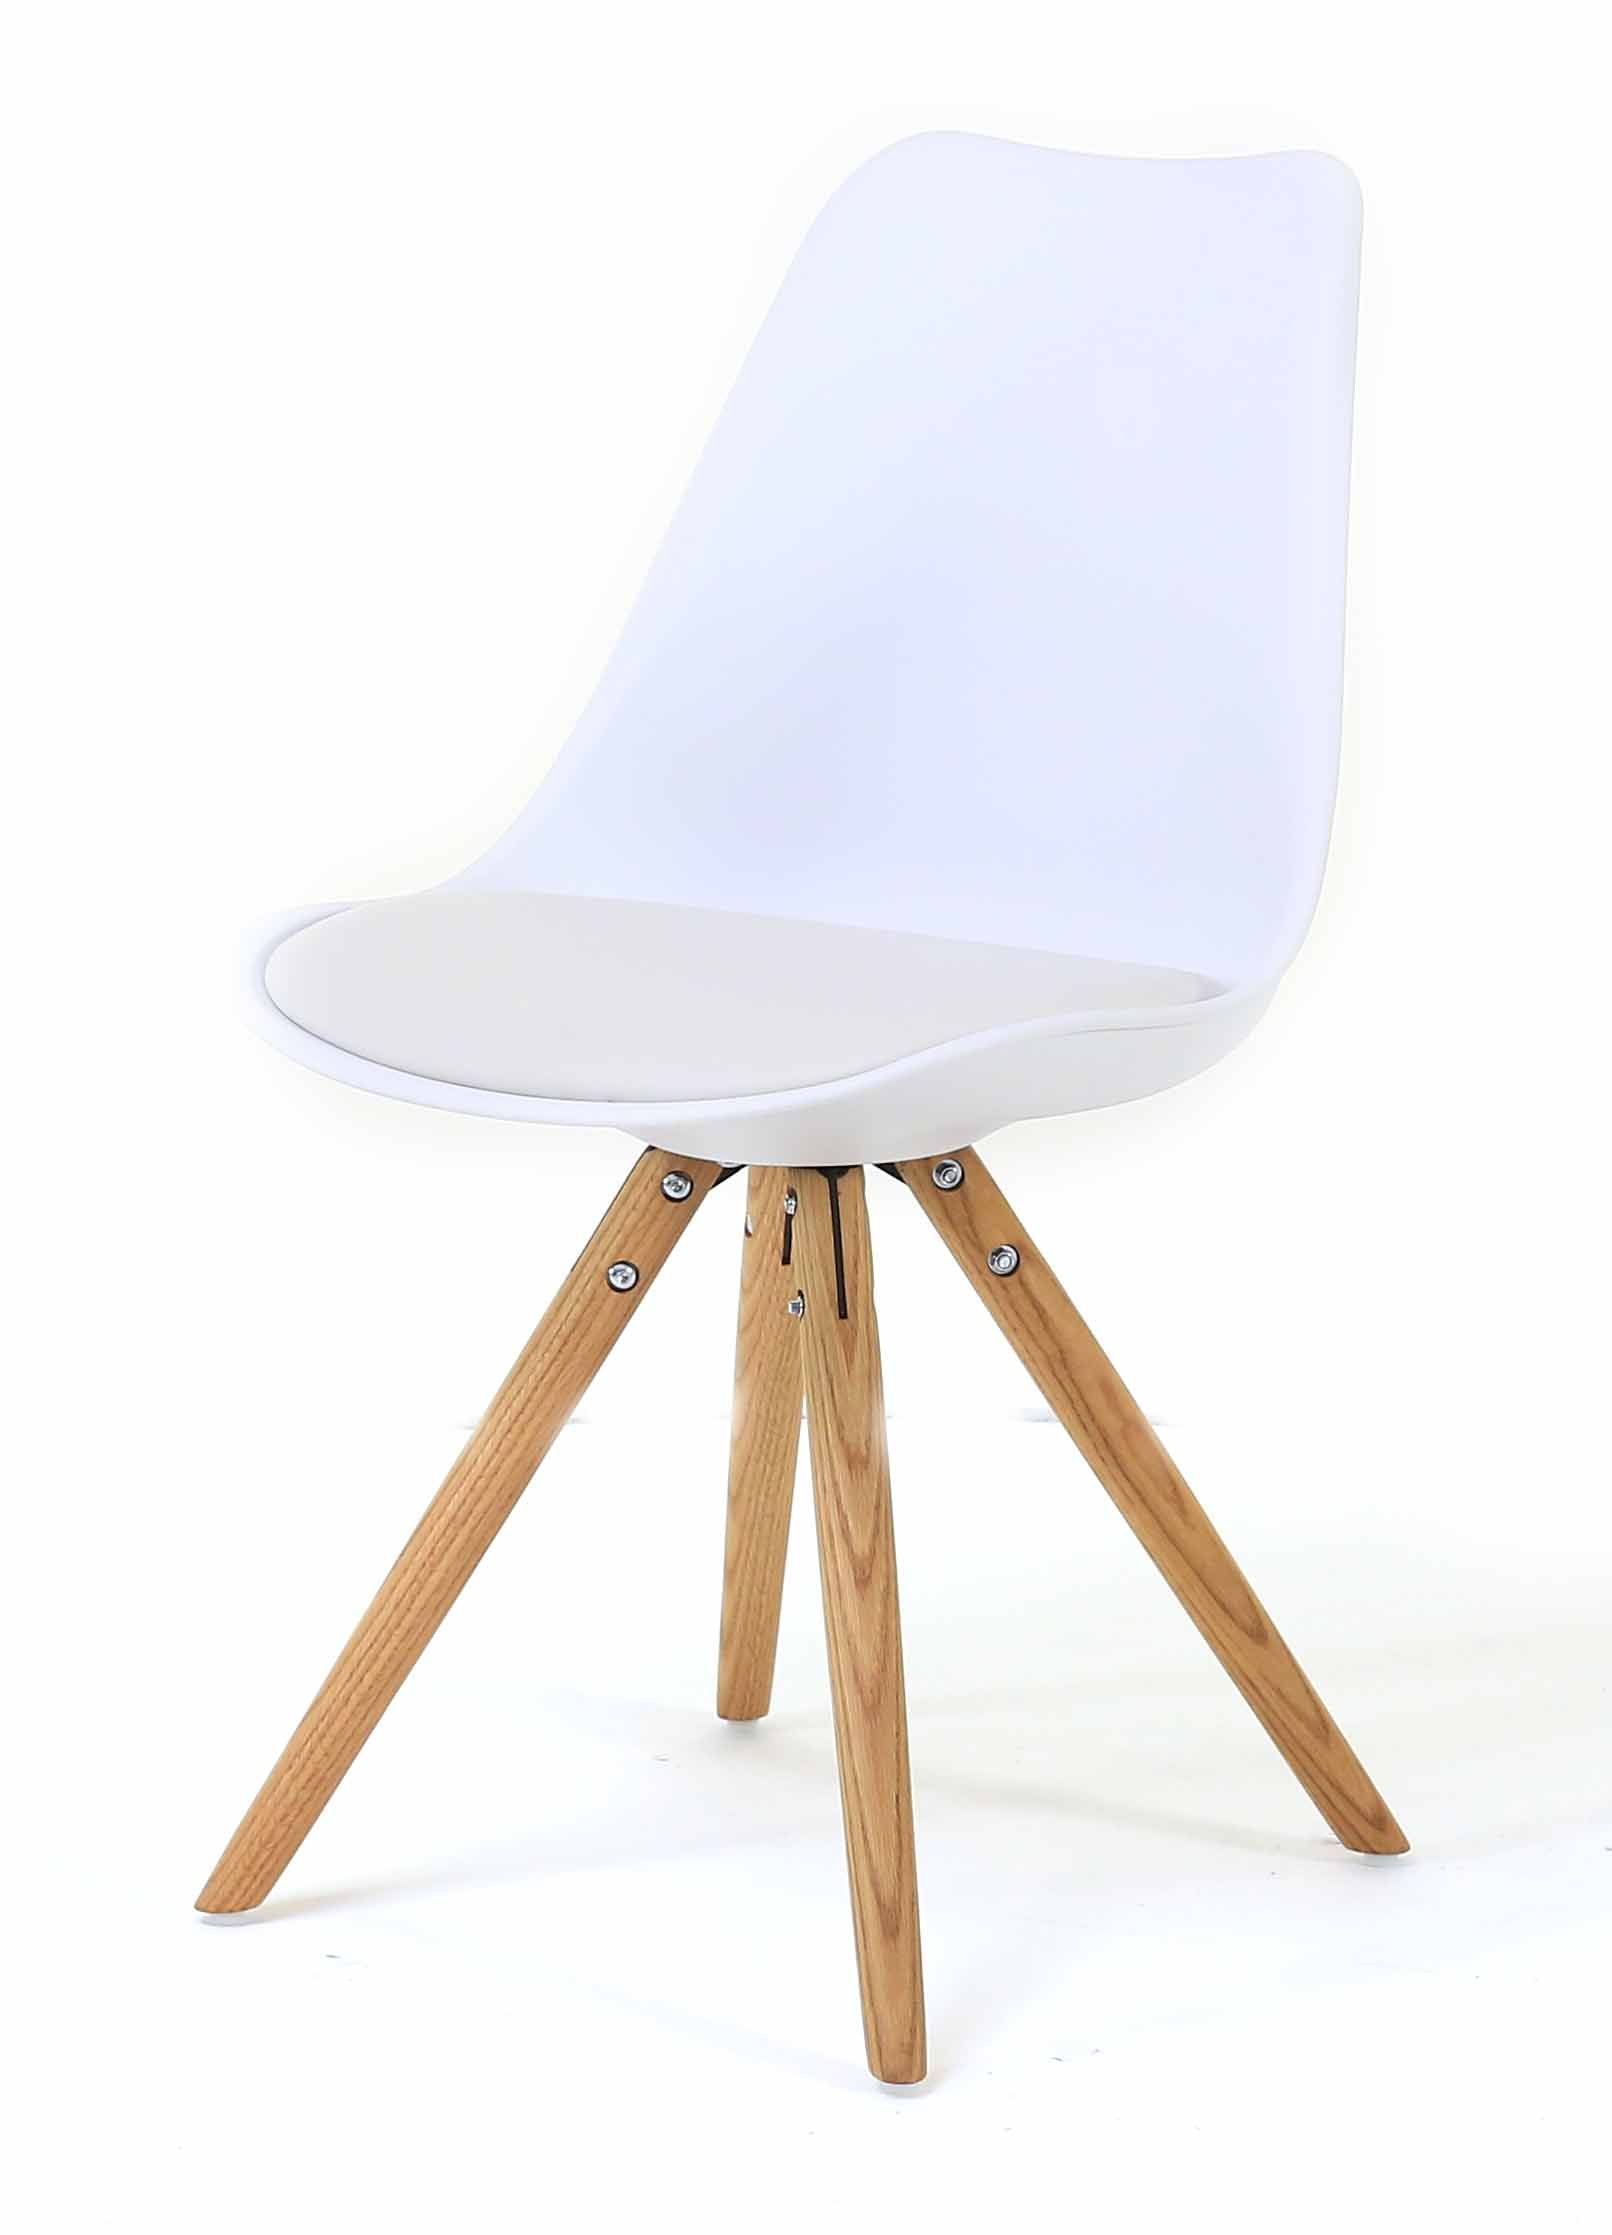 Coin repas chaises chaise repas blanche cross le - Chaises laquees blanches ...